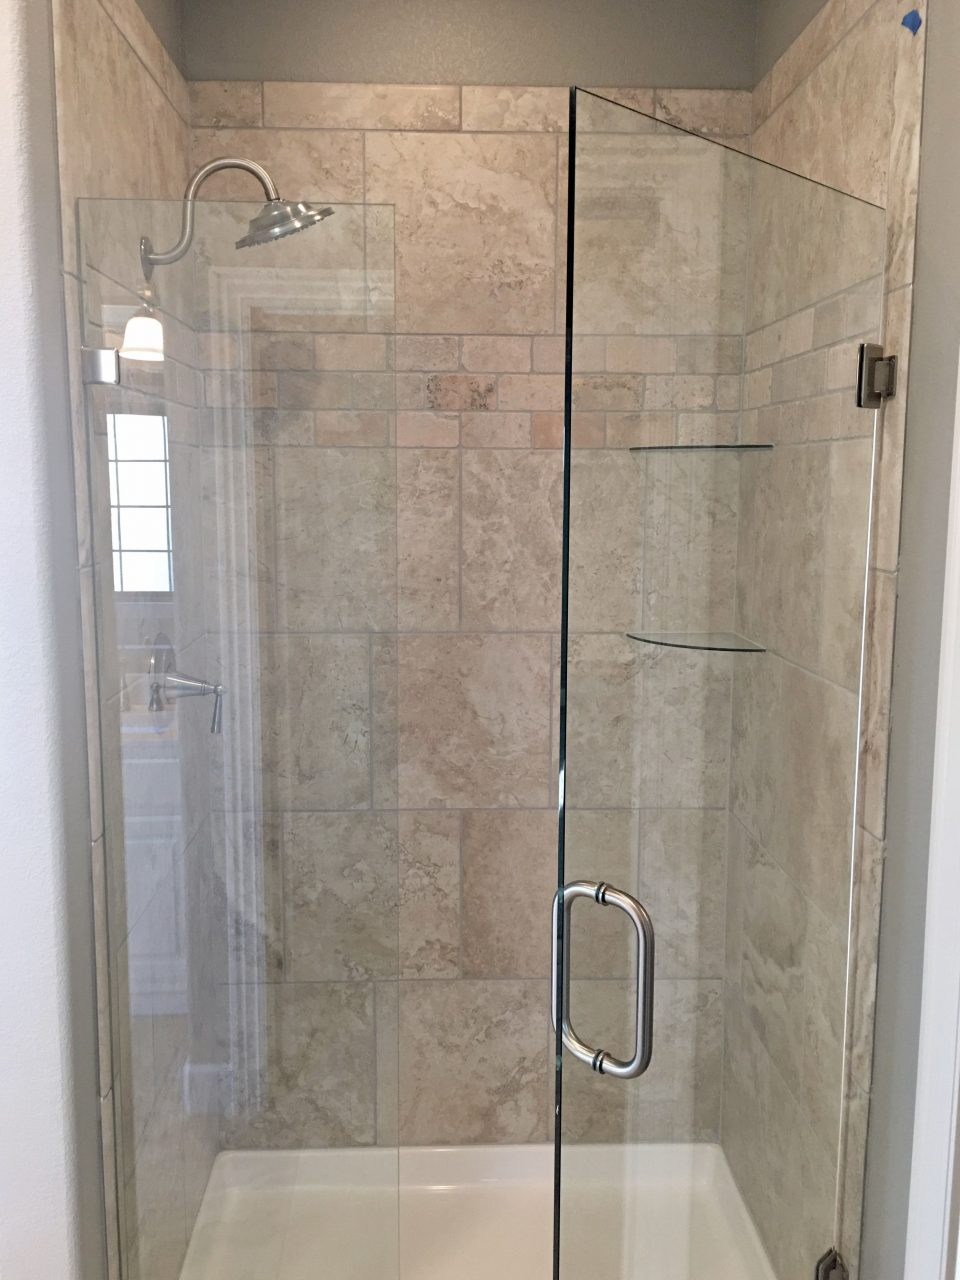 Glass Door Shower With Greige Porcelain And Travertine Tile Walls